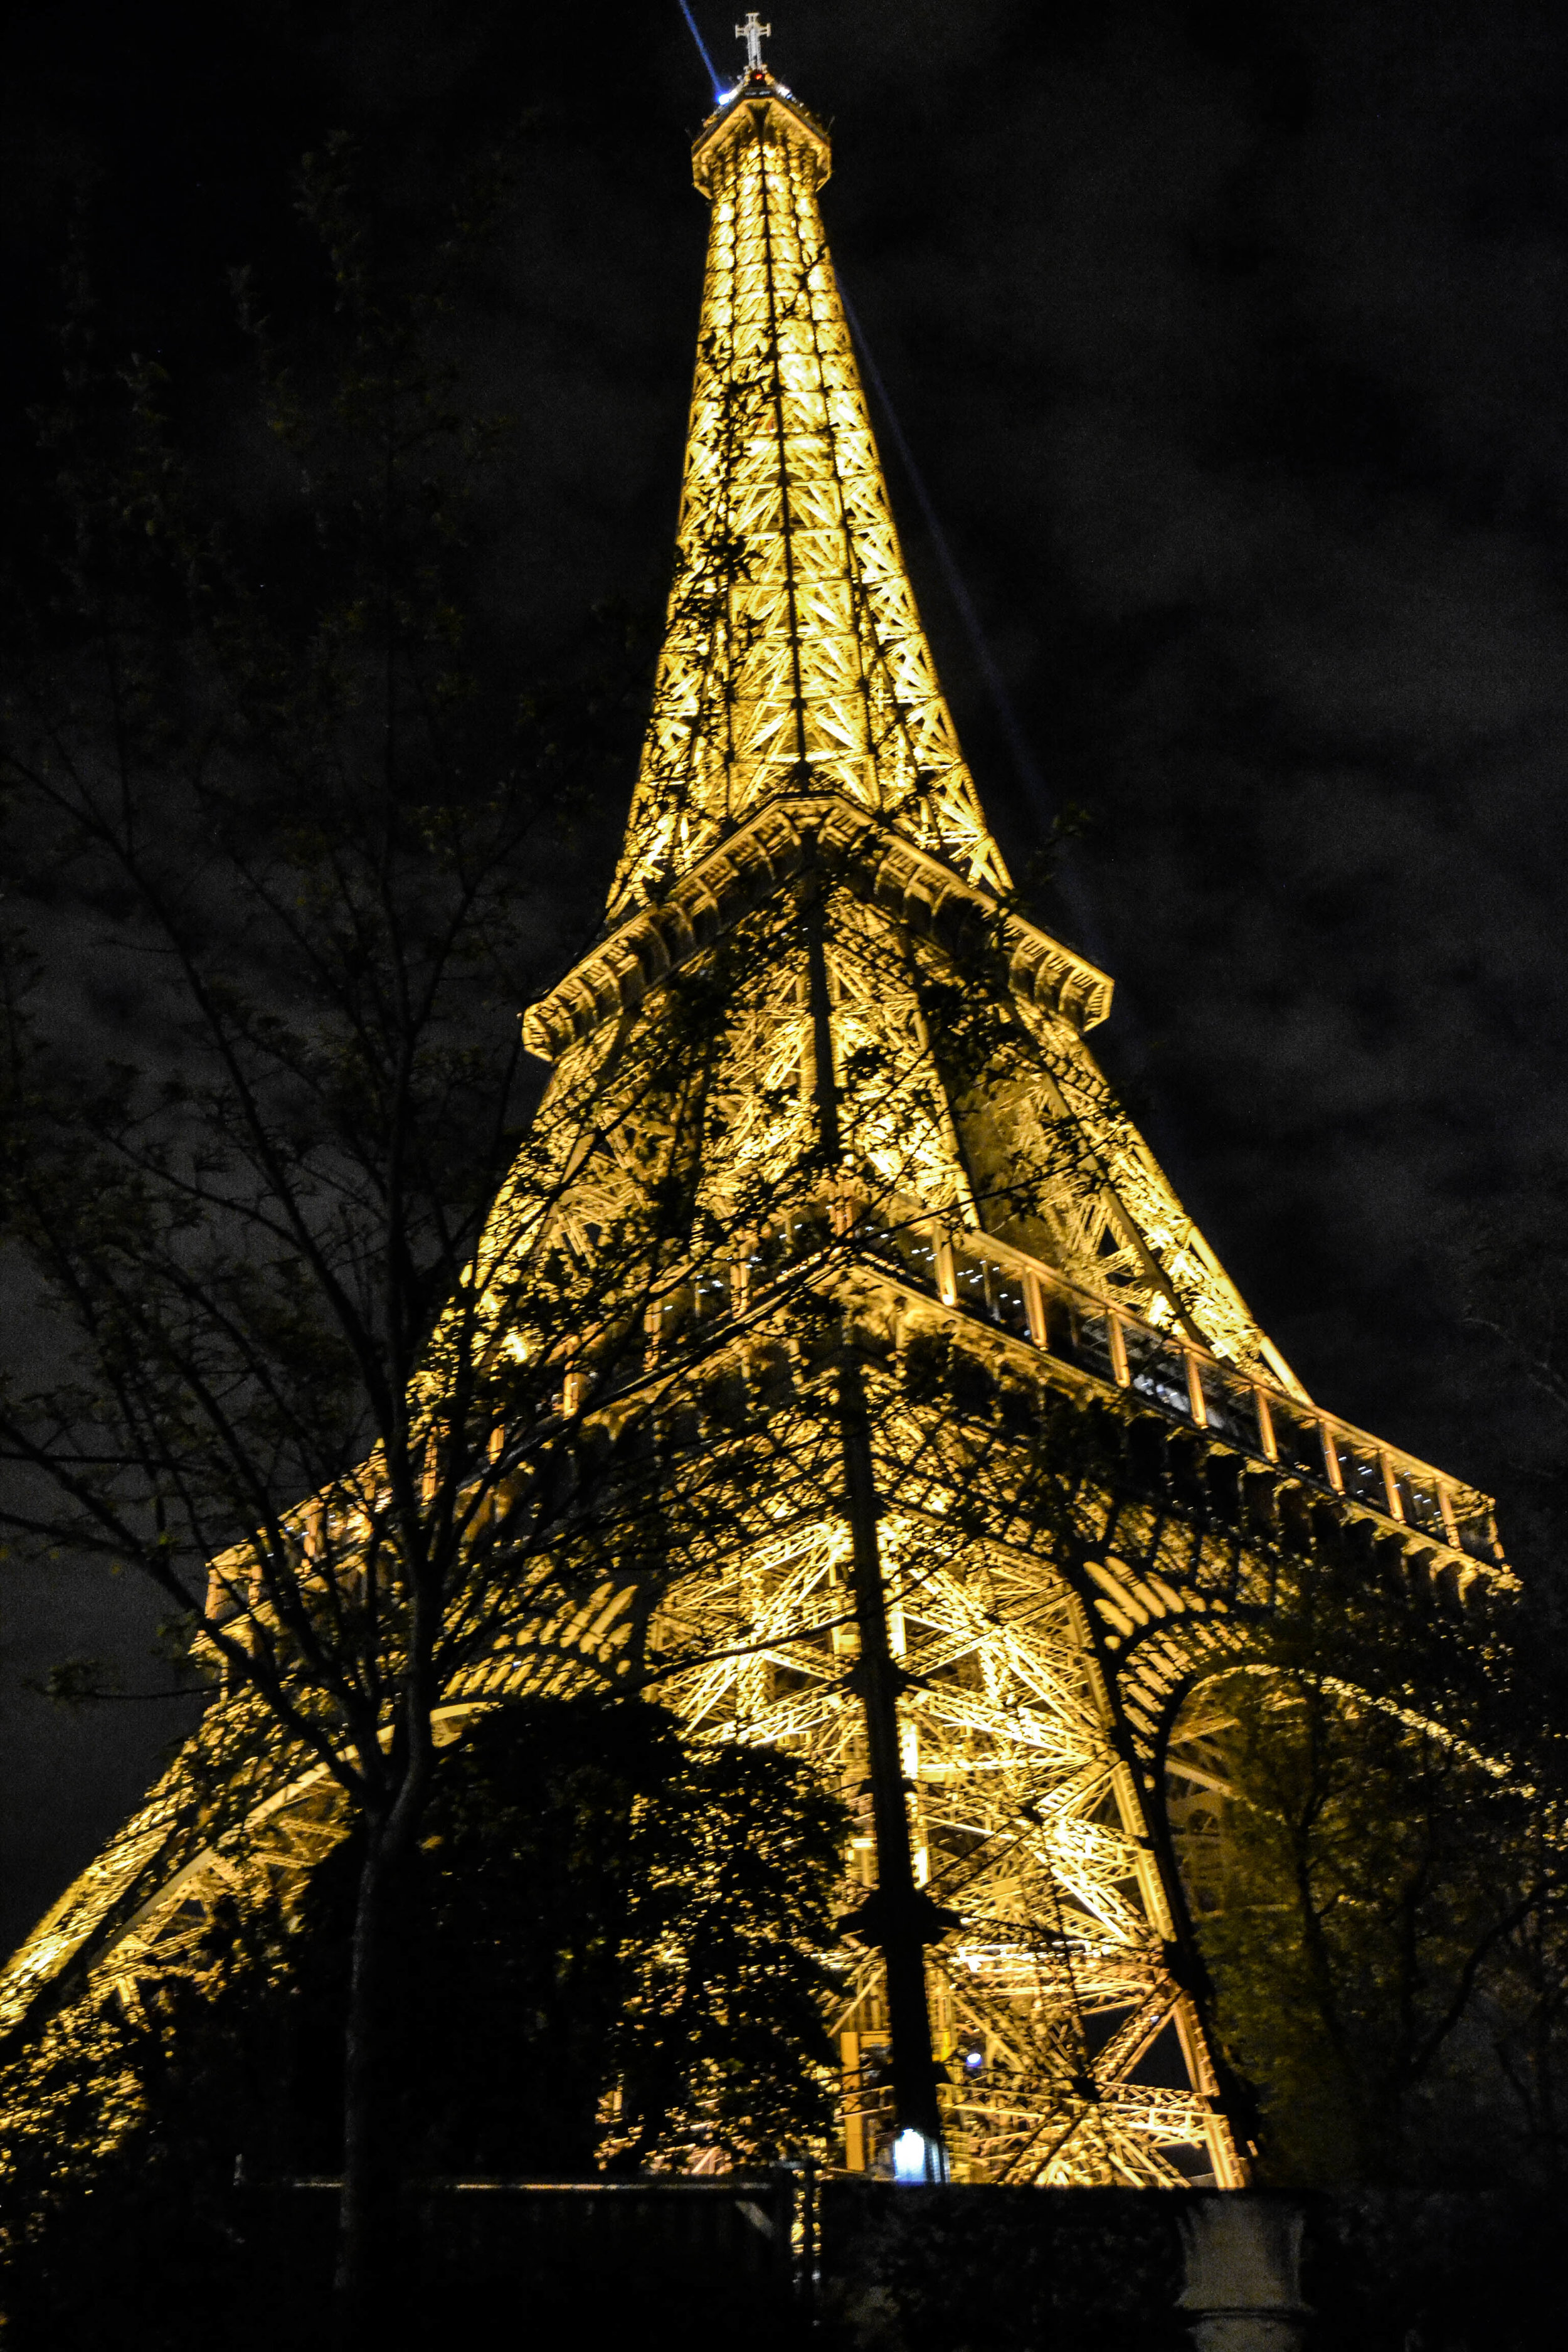 PARIS - EFFIEL TOWER AT NIGHT, 2015.